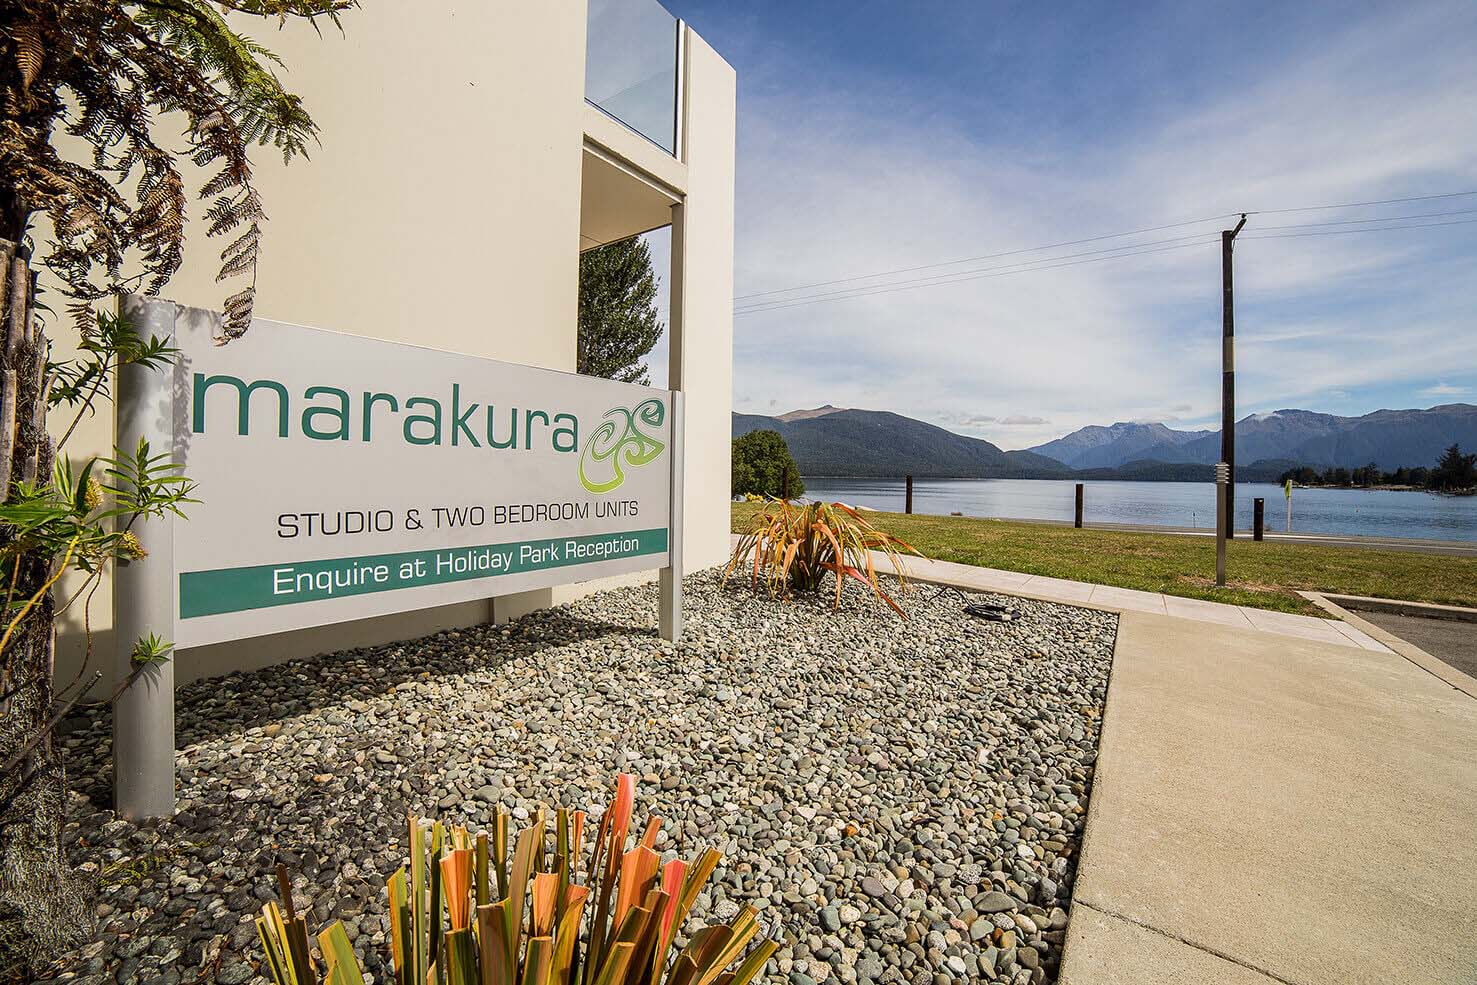 Marakura Motels sign in the foreground with a calm Lake Te Anau and mountains in the background